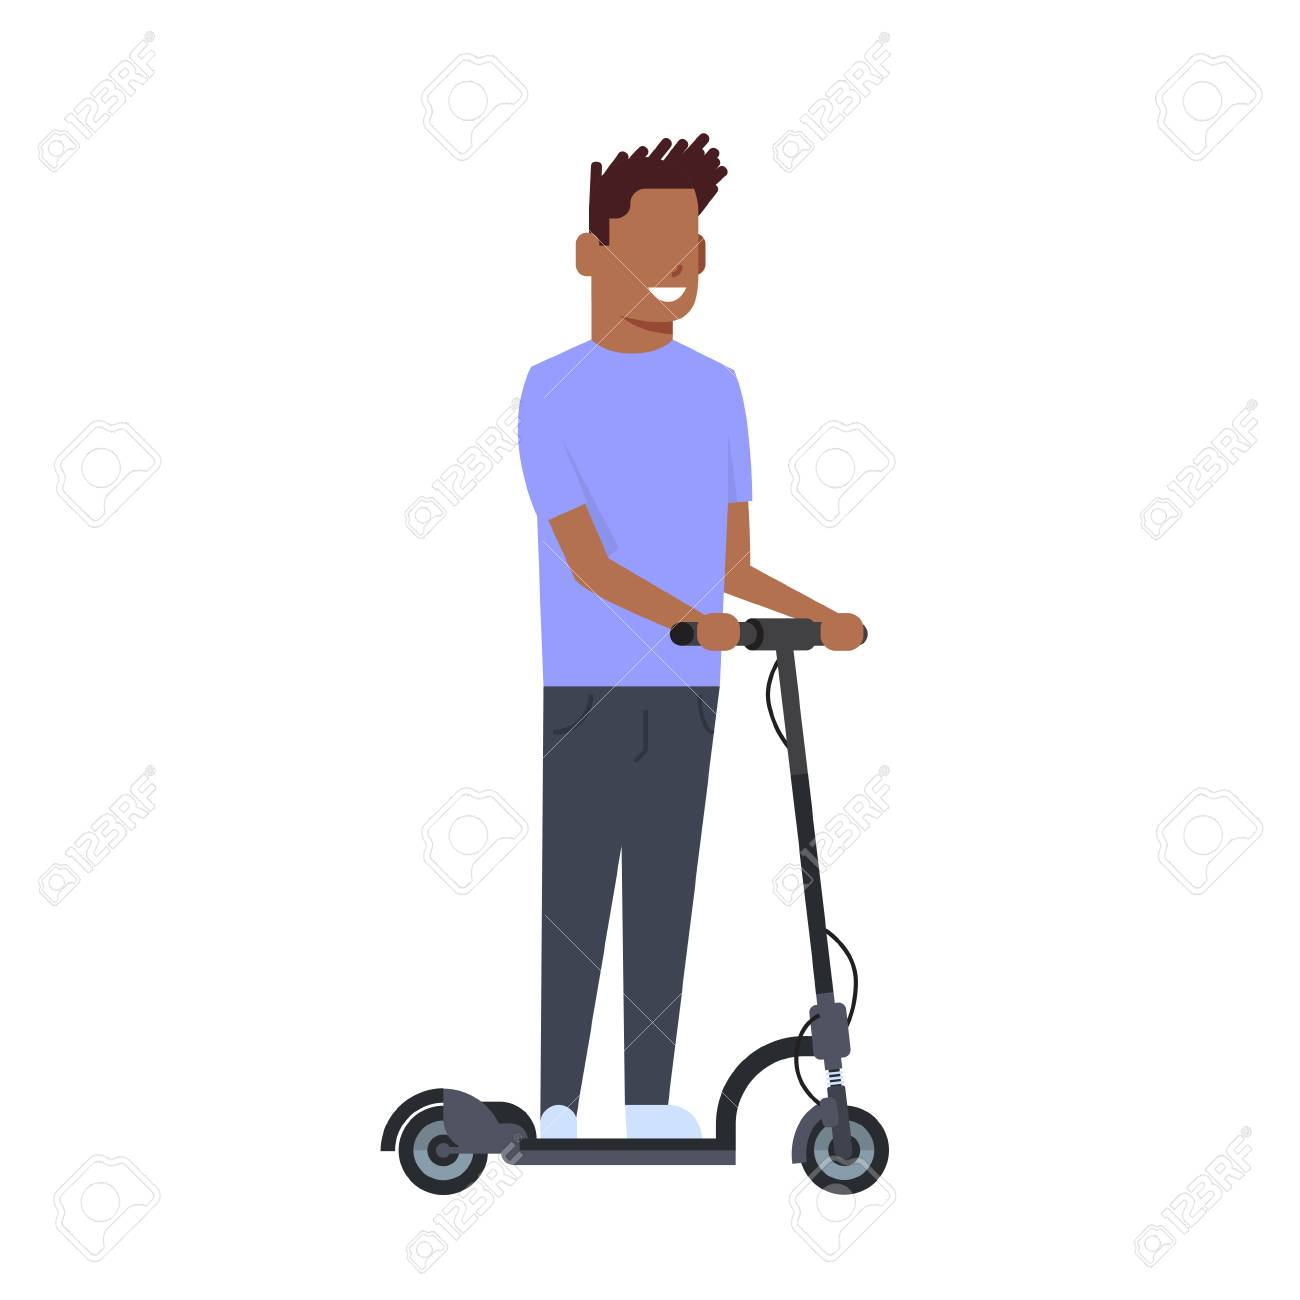 African Boy Riding Electric Kick Scooter Over White Background 1300x1300